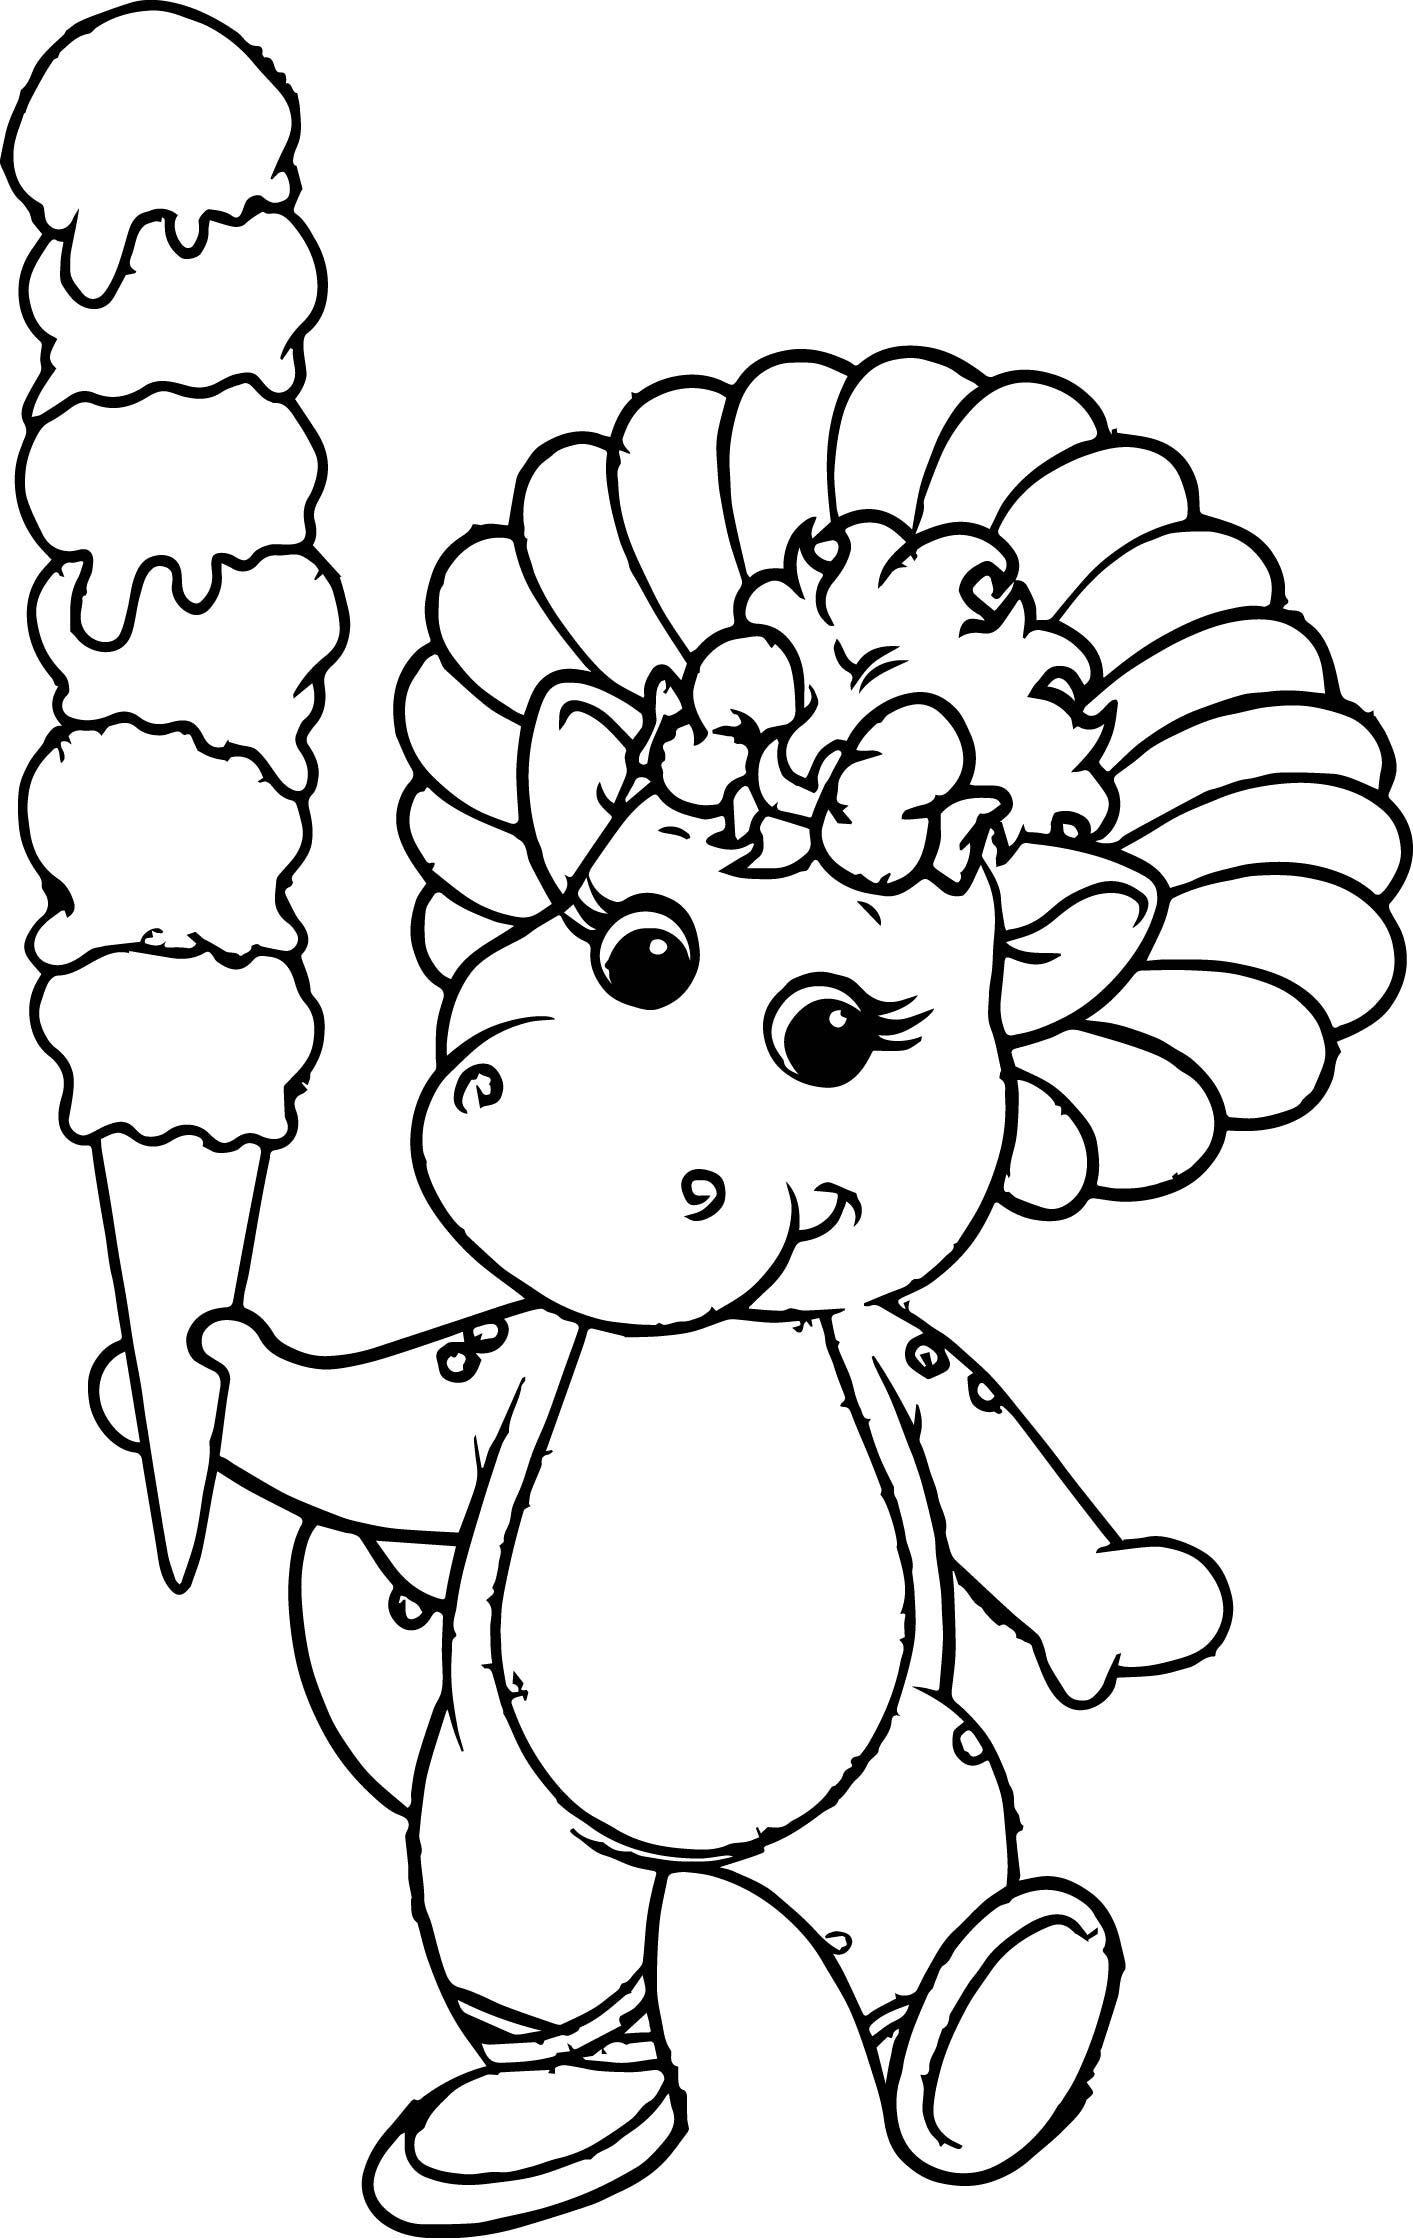 Baby Bop And Her Icy Creamy Coloring Page